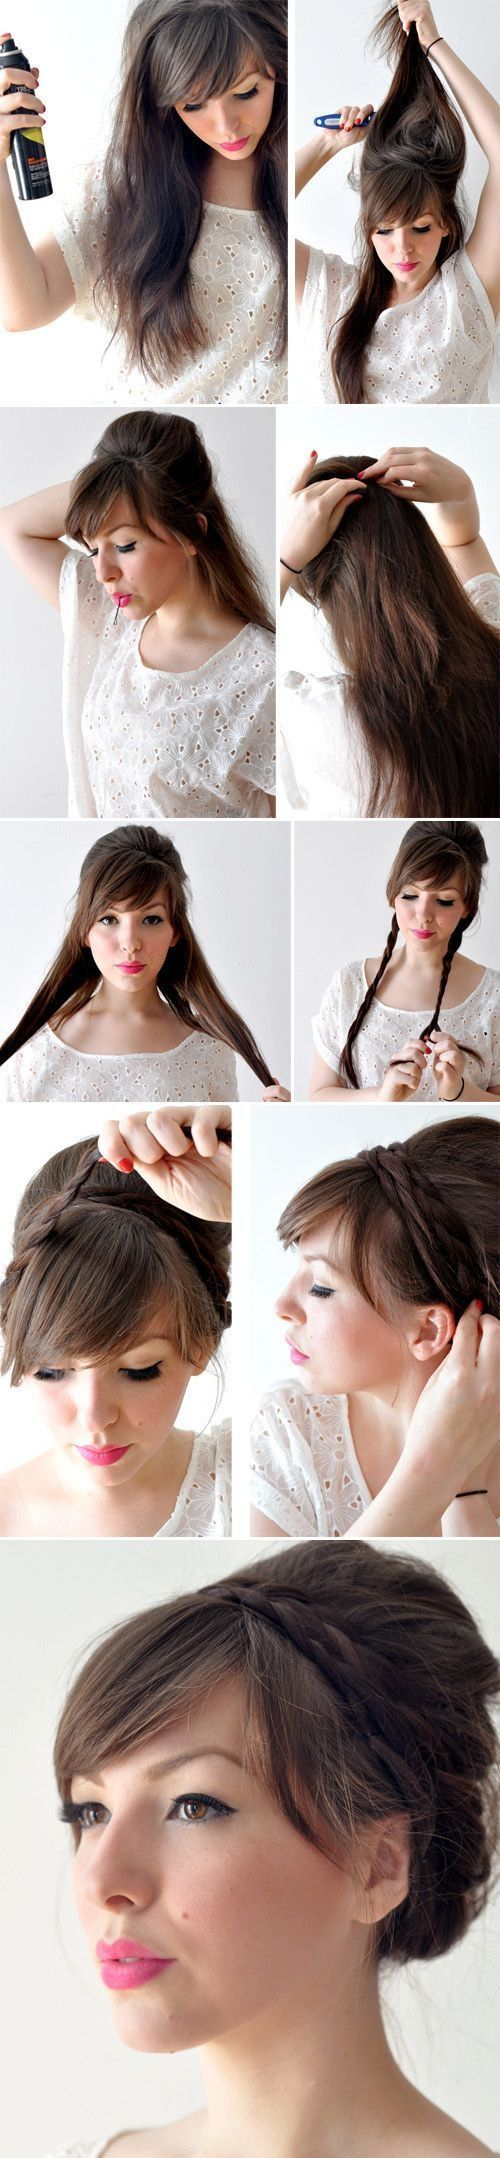 Easy+long+hair+up-do+@+The+Beauty+ThesisThe+Beauty+Thesis